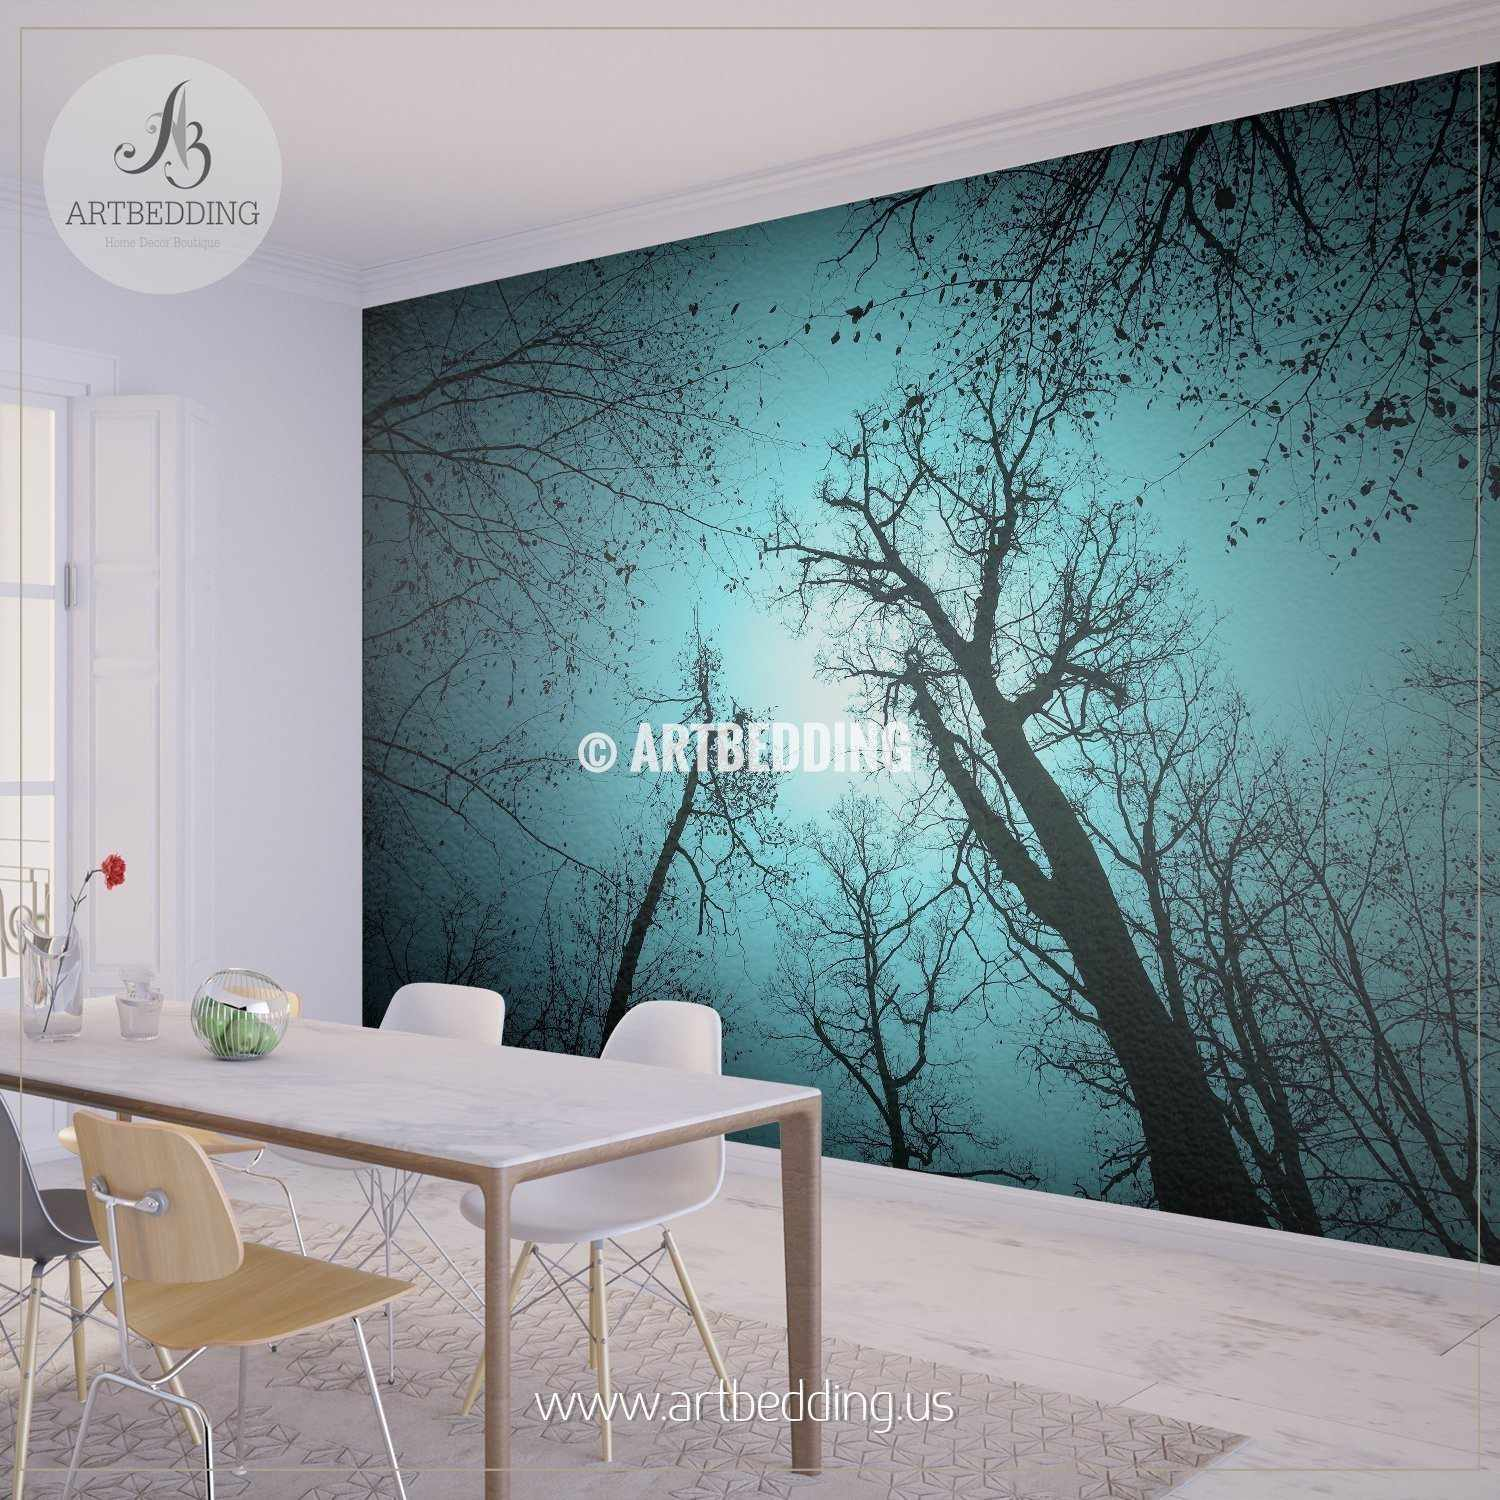 Wall murals forest scene images home wall decoration ideas forest scene wall mural choice image home wall decoration ideas wall murals forest scene image collections amipublicfo Choice Image